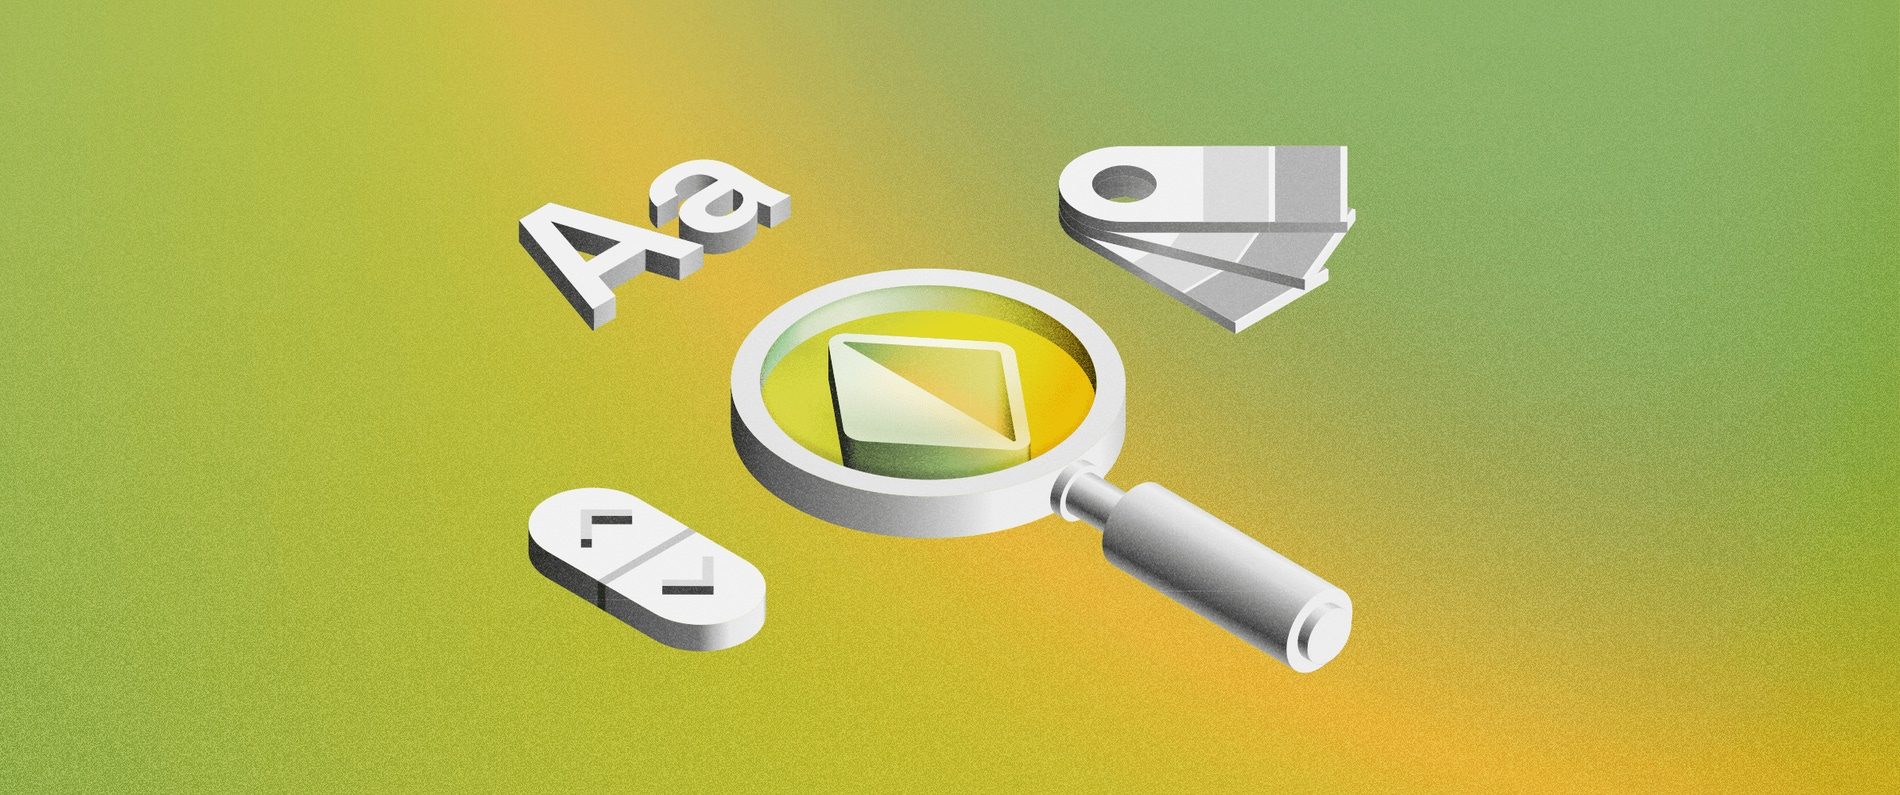 An illustrated image showing stylized icons that represent different handoff tools in Sketch